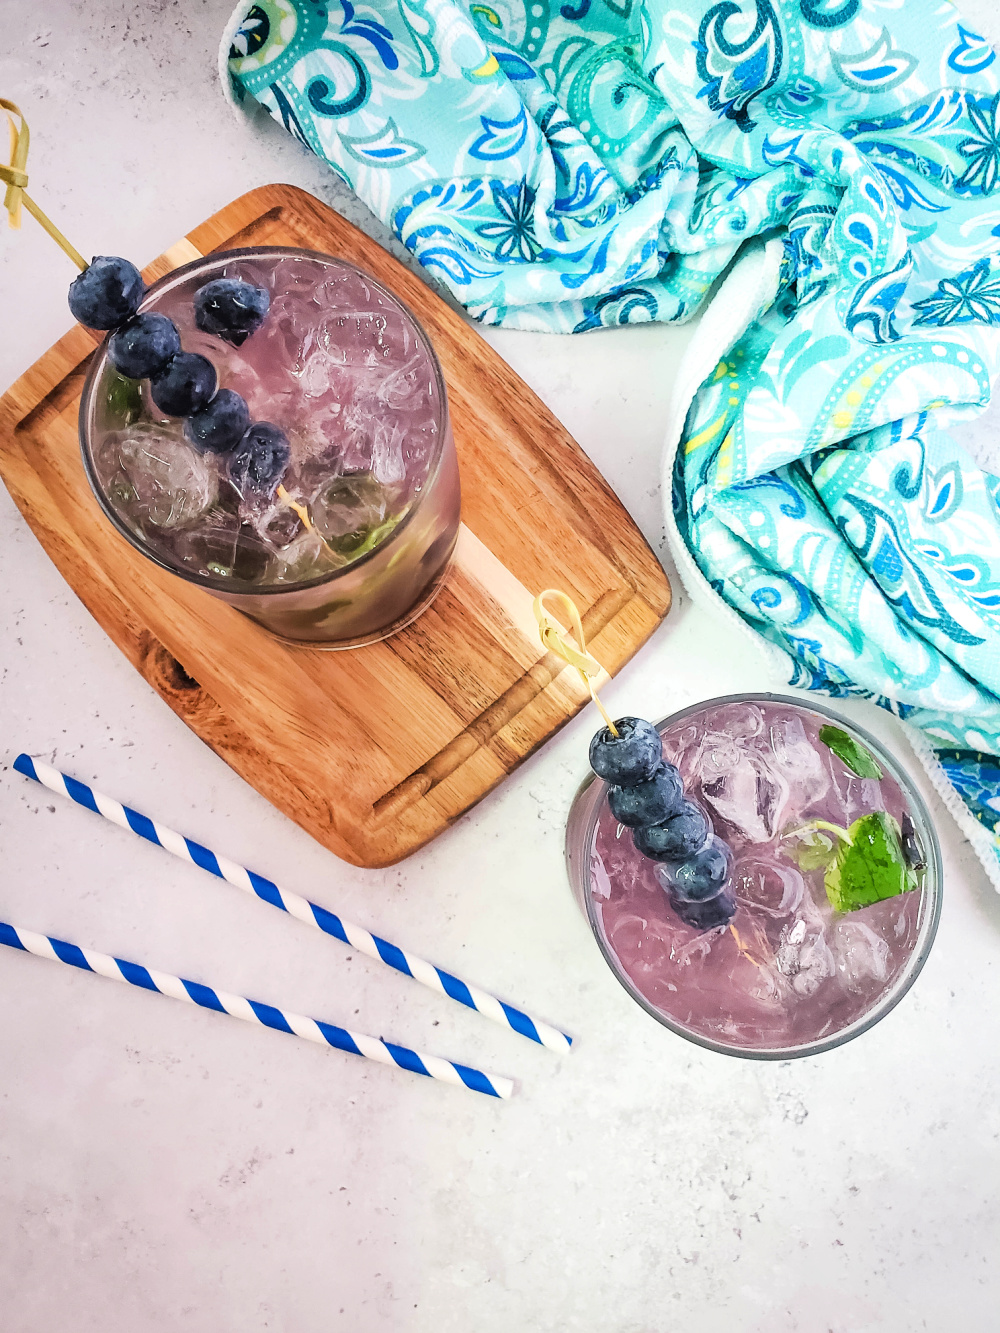 A blueberry mojito cocktail garnished with a skewer of blueberries and surrounded by a aqua hand towel and blue striped straws.